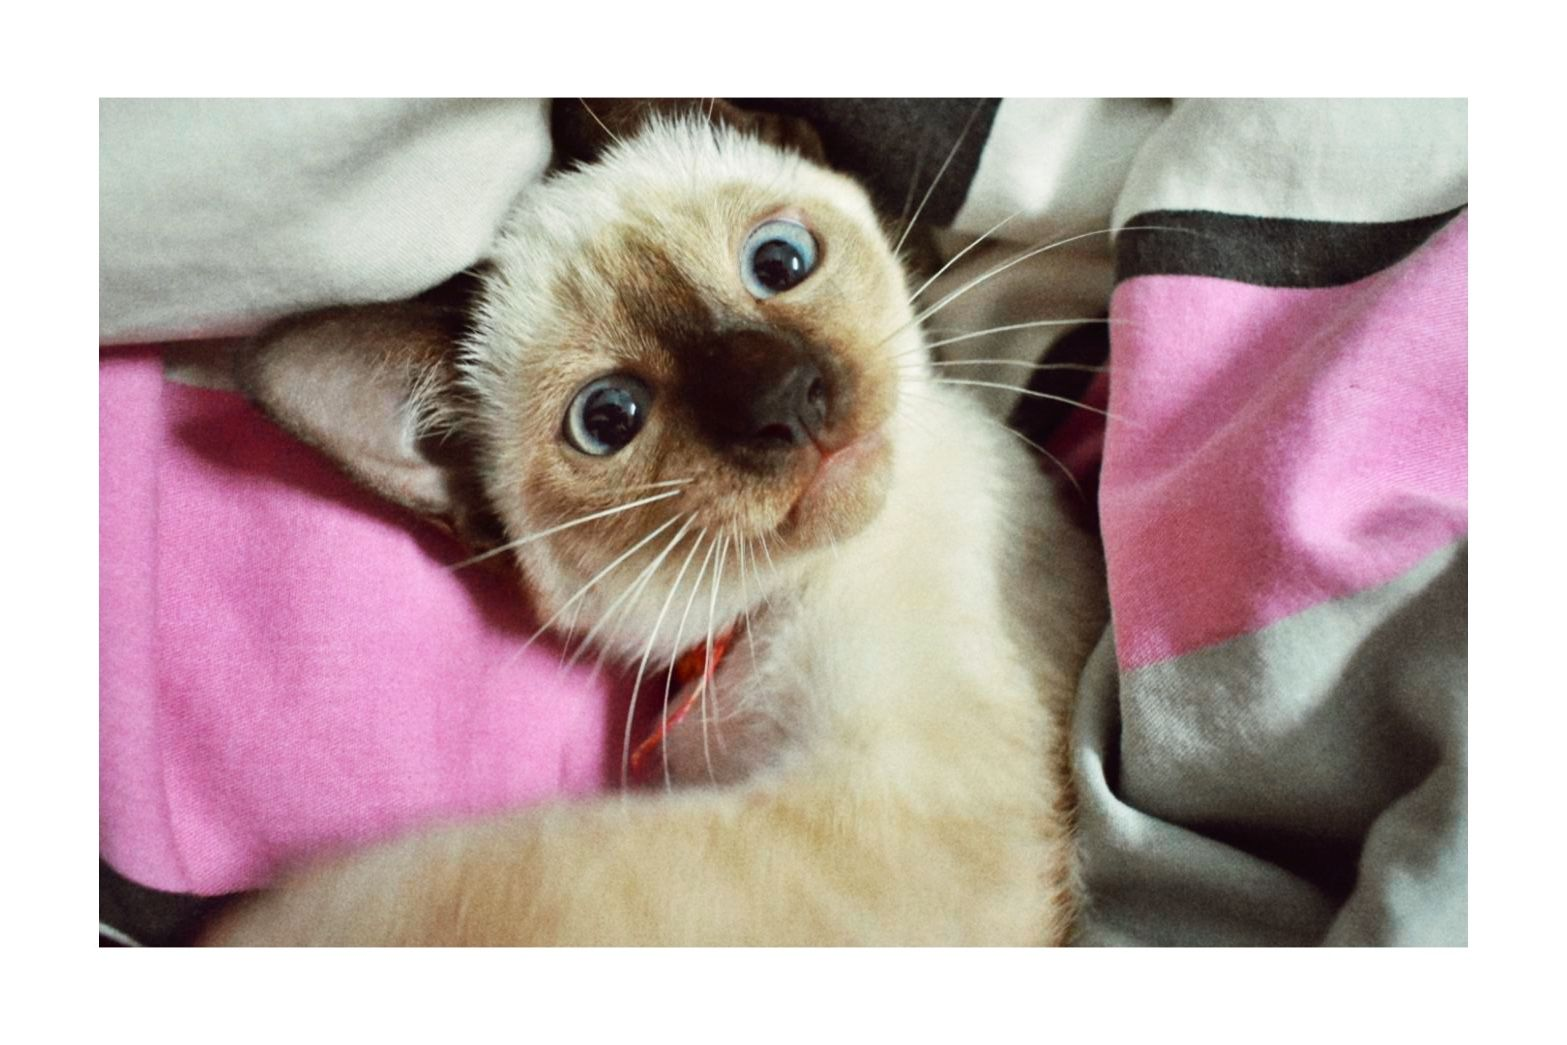 Art And Photos Of The Siamese Cat Siamese Orientals Cats Siamese Kittens Ideas Of Siamese Kittens Siamesekittens A Siamese Cats Cute Cats Cute Animals